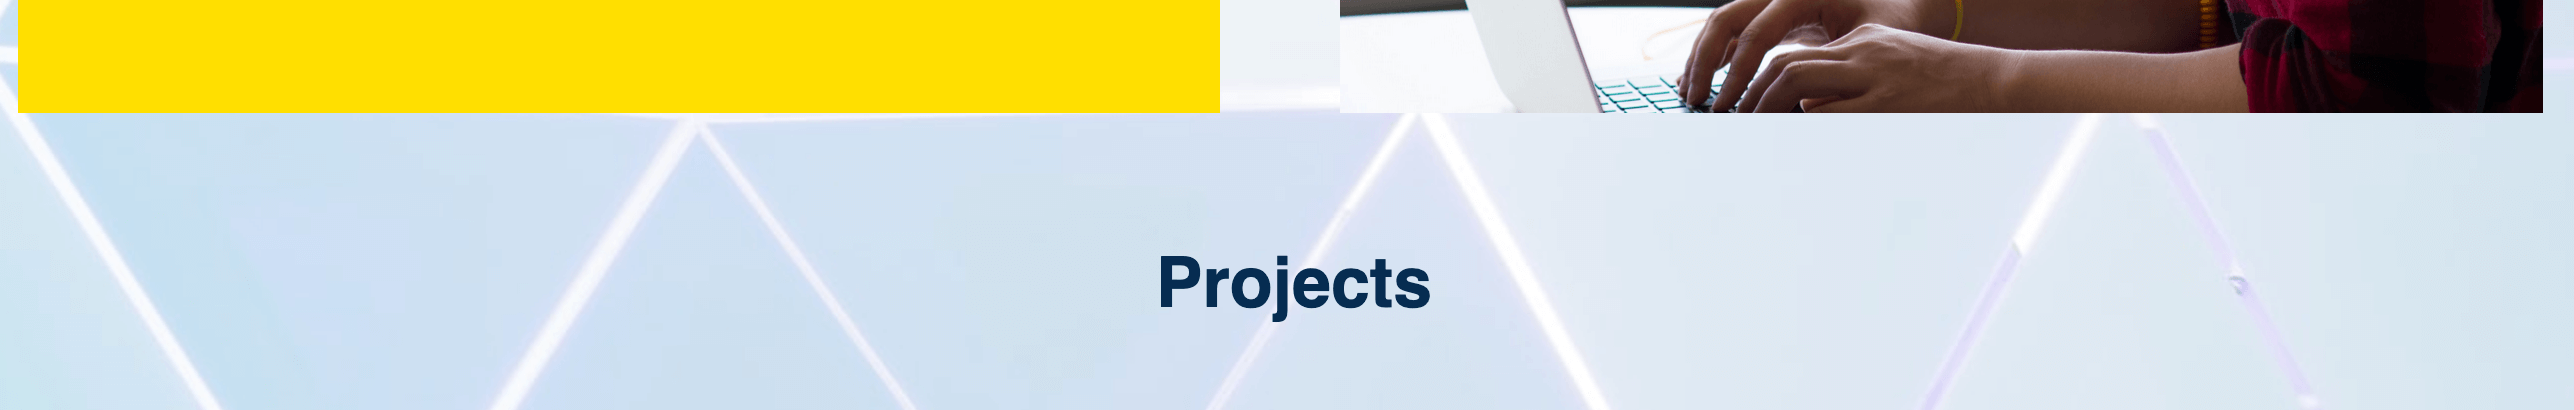 Styled project heading on webpage